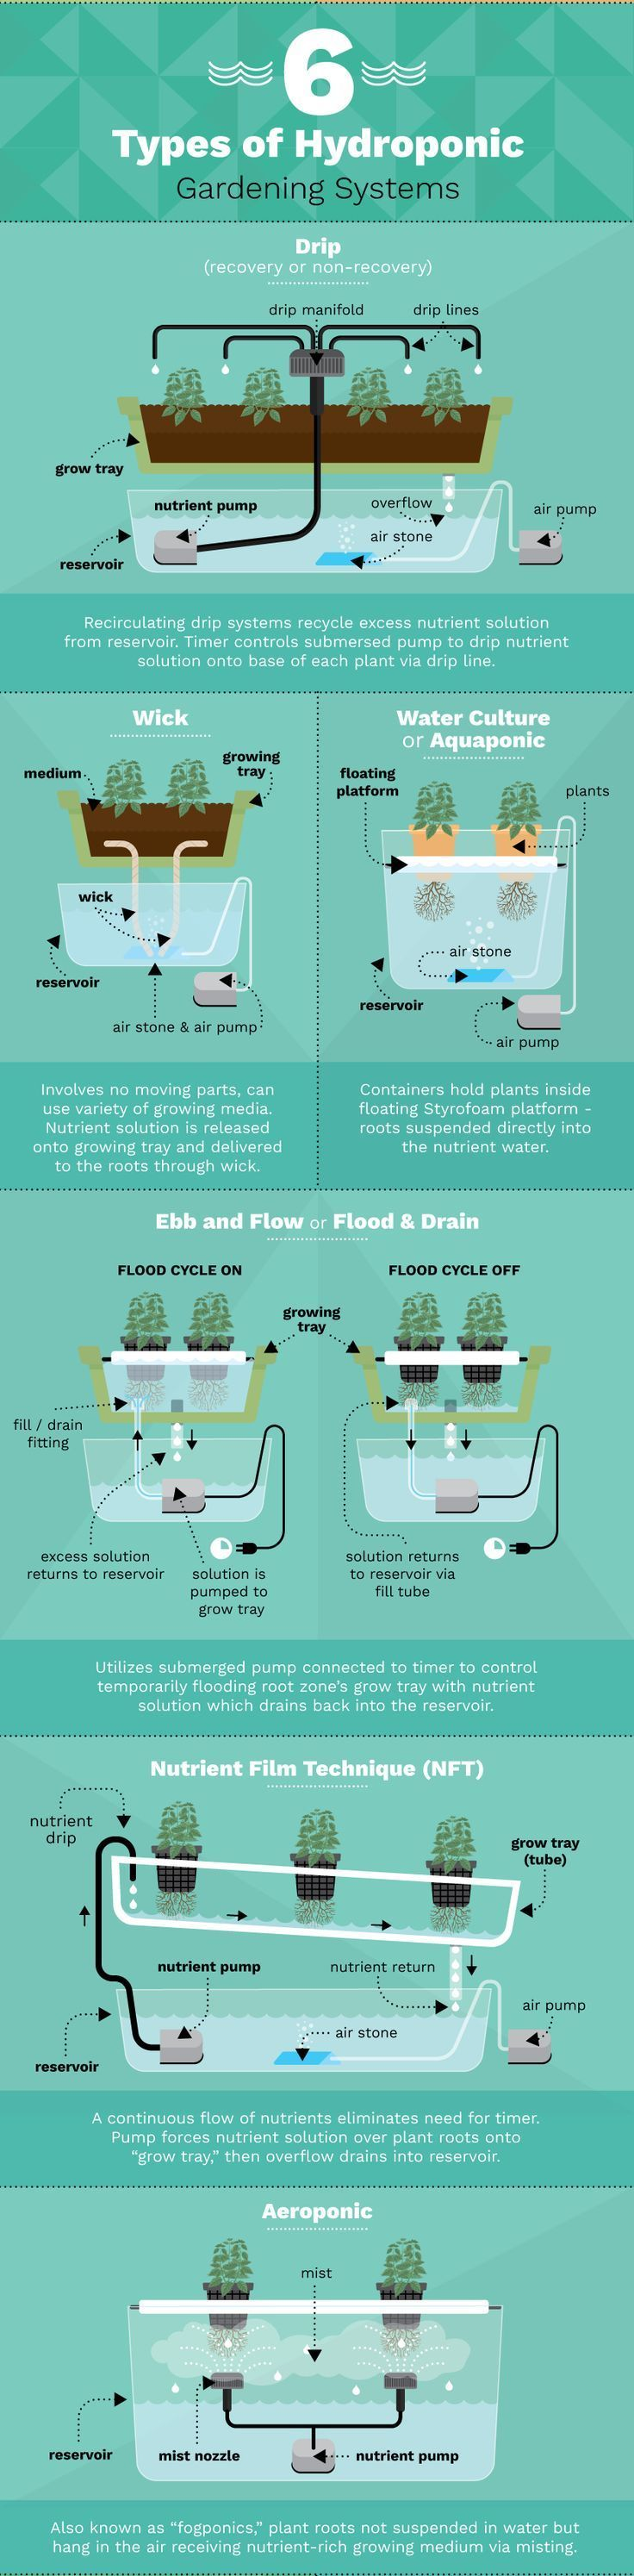 Six types of hydroponic gardening systems Marijuana Project Ideas Project Difficulty: Simple MaritimeVintage.com